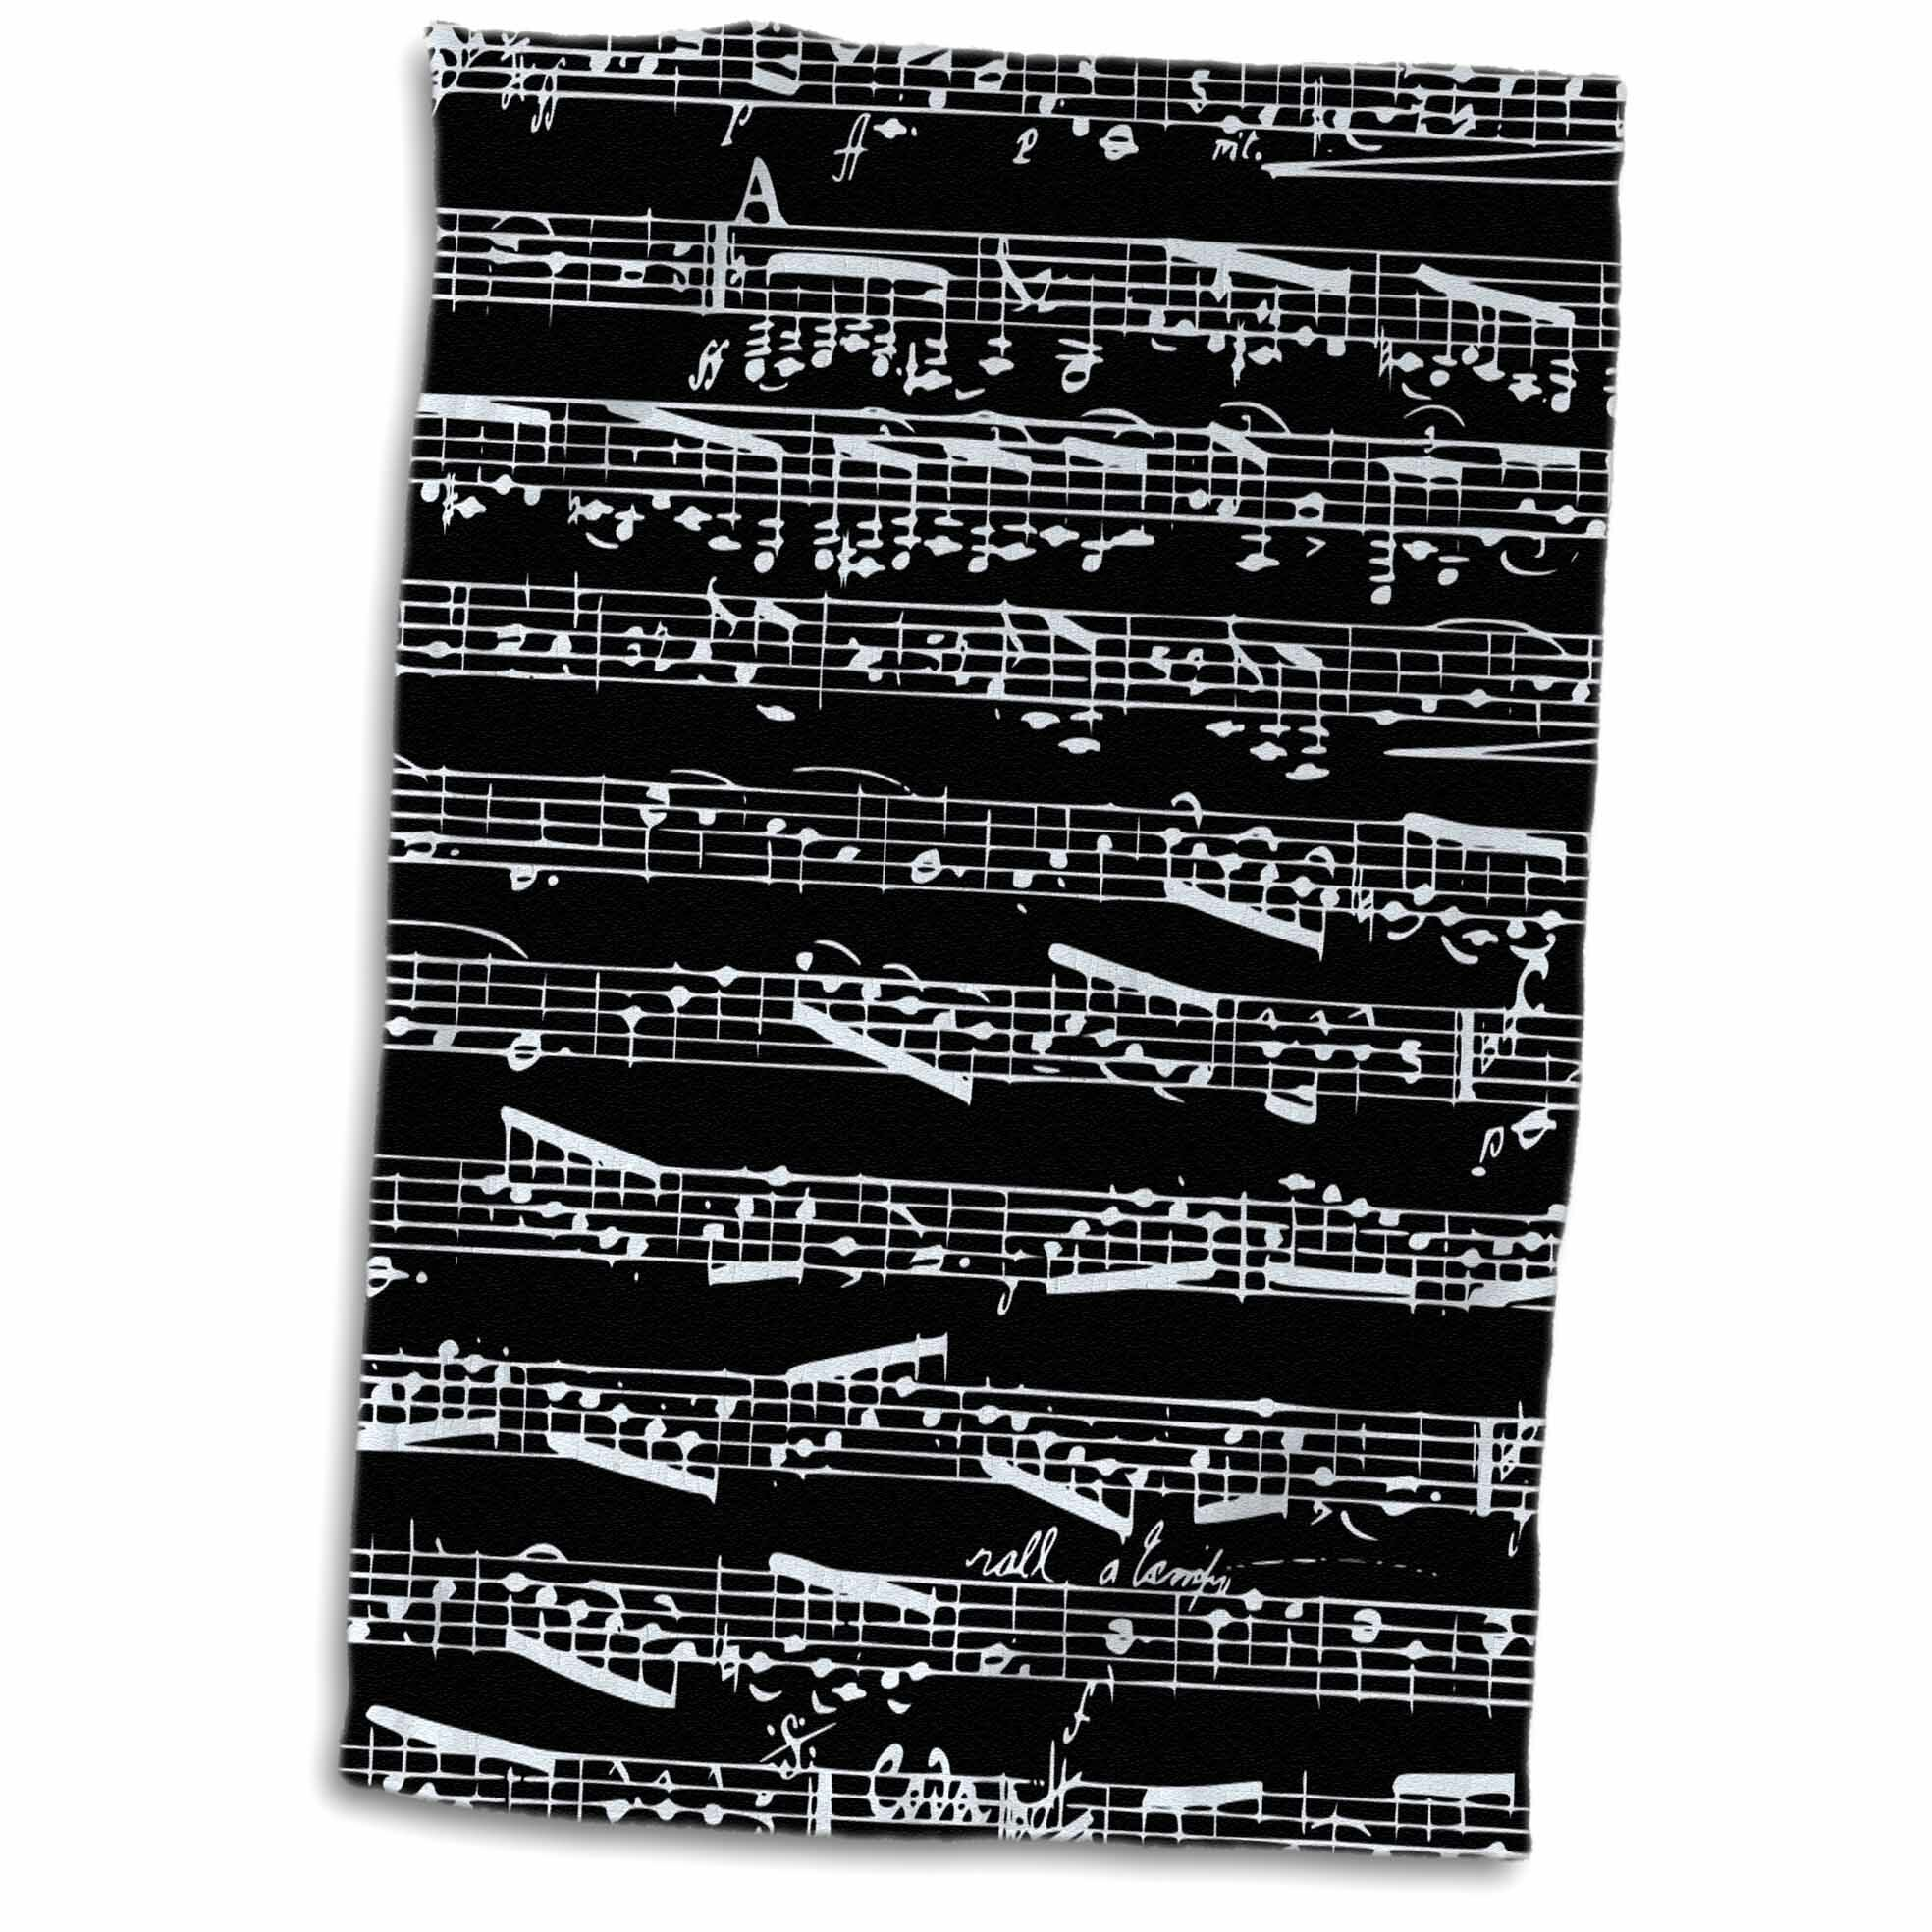 Symple Stuff Laroche Musical Notes Stylish Sheet Music Piano Notation Contemporary Hand Towel Wayfair